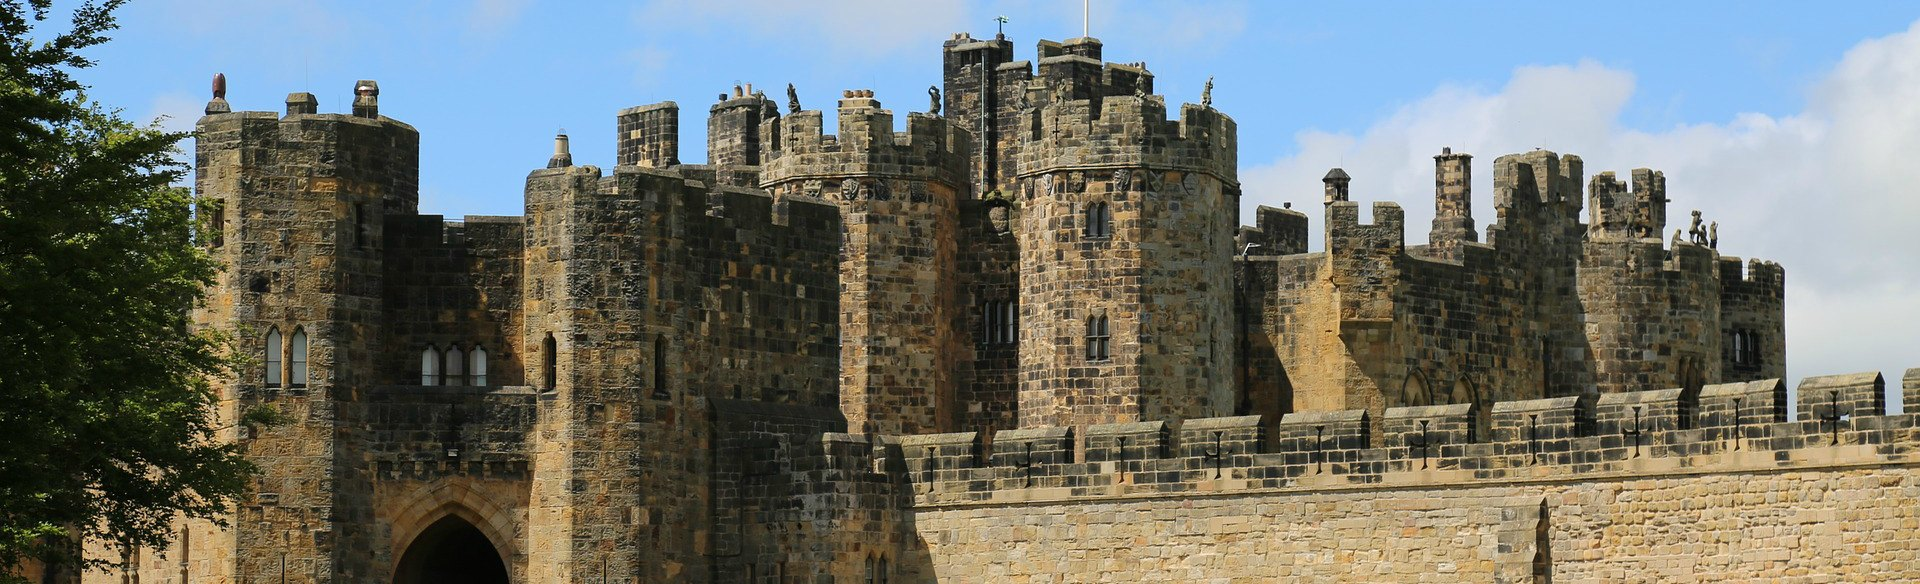 Magical Alnwick Castle